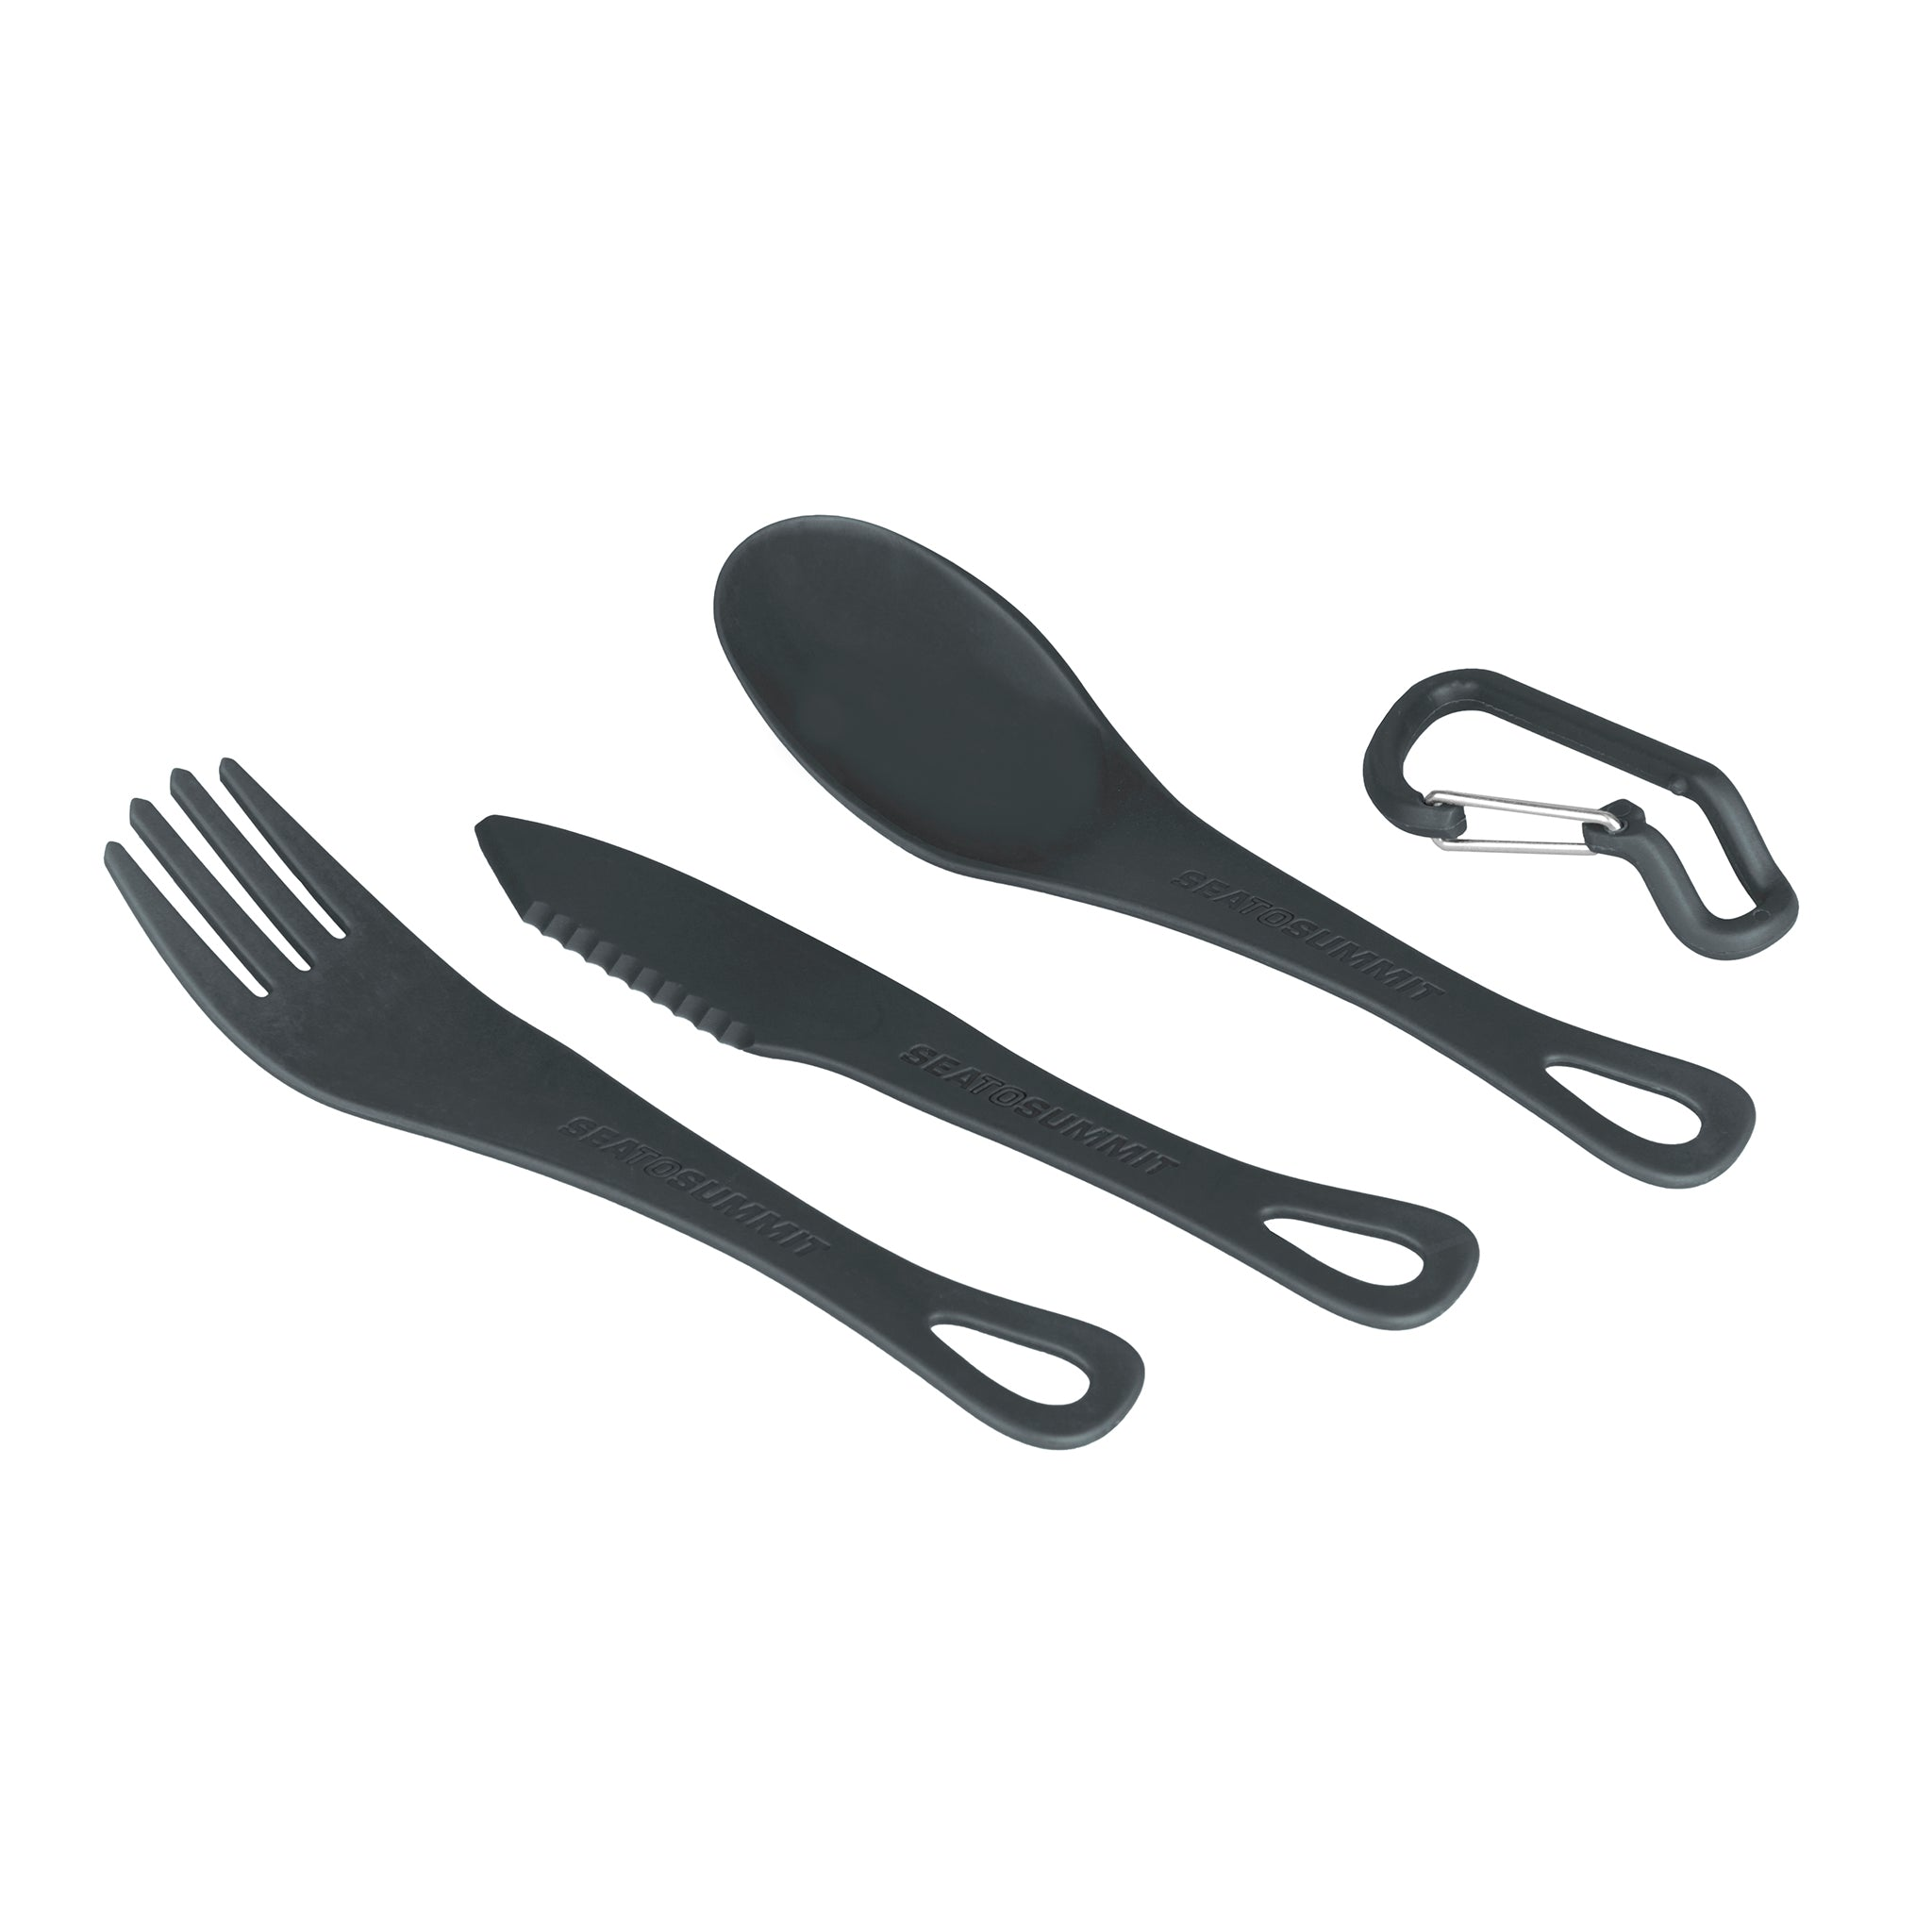 Delta Light Camp Set 2.2 _ two person camping dinner set _ cutlery grayDelta Light Camp Set 2.2 _ two person camping dinner set _ cutlery gray